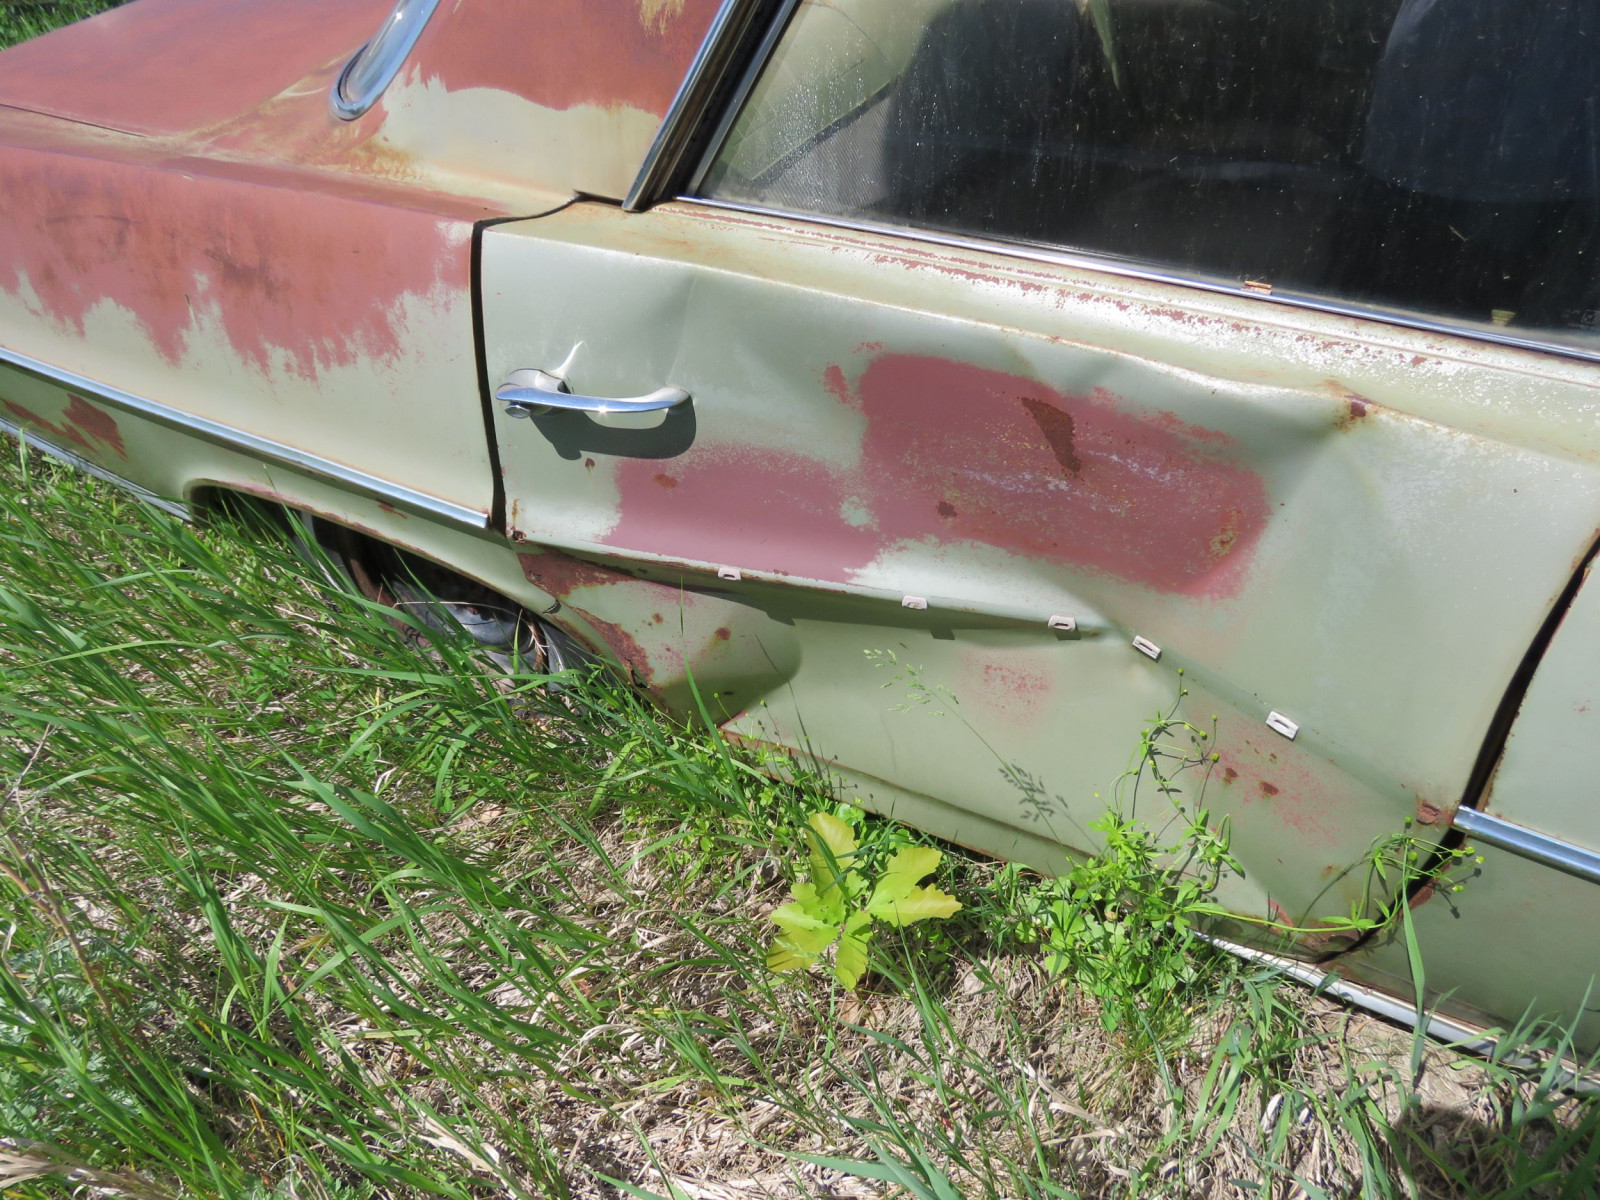 1964 Pontiac Catalina 4dr Sedan for Project or parts - Image 4